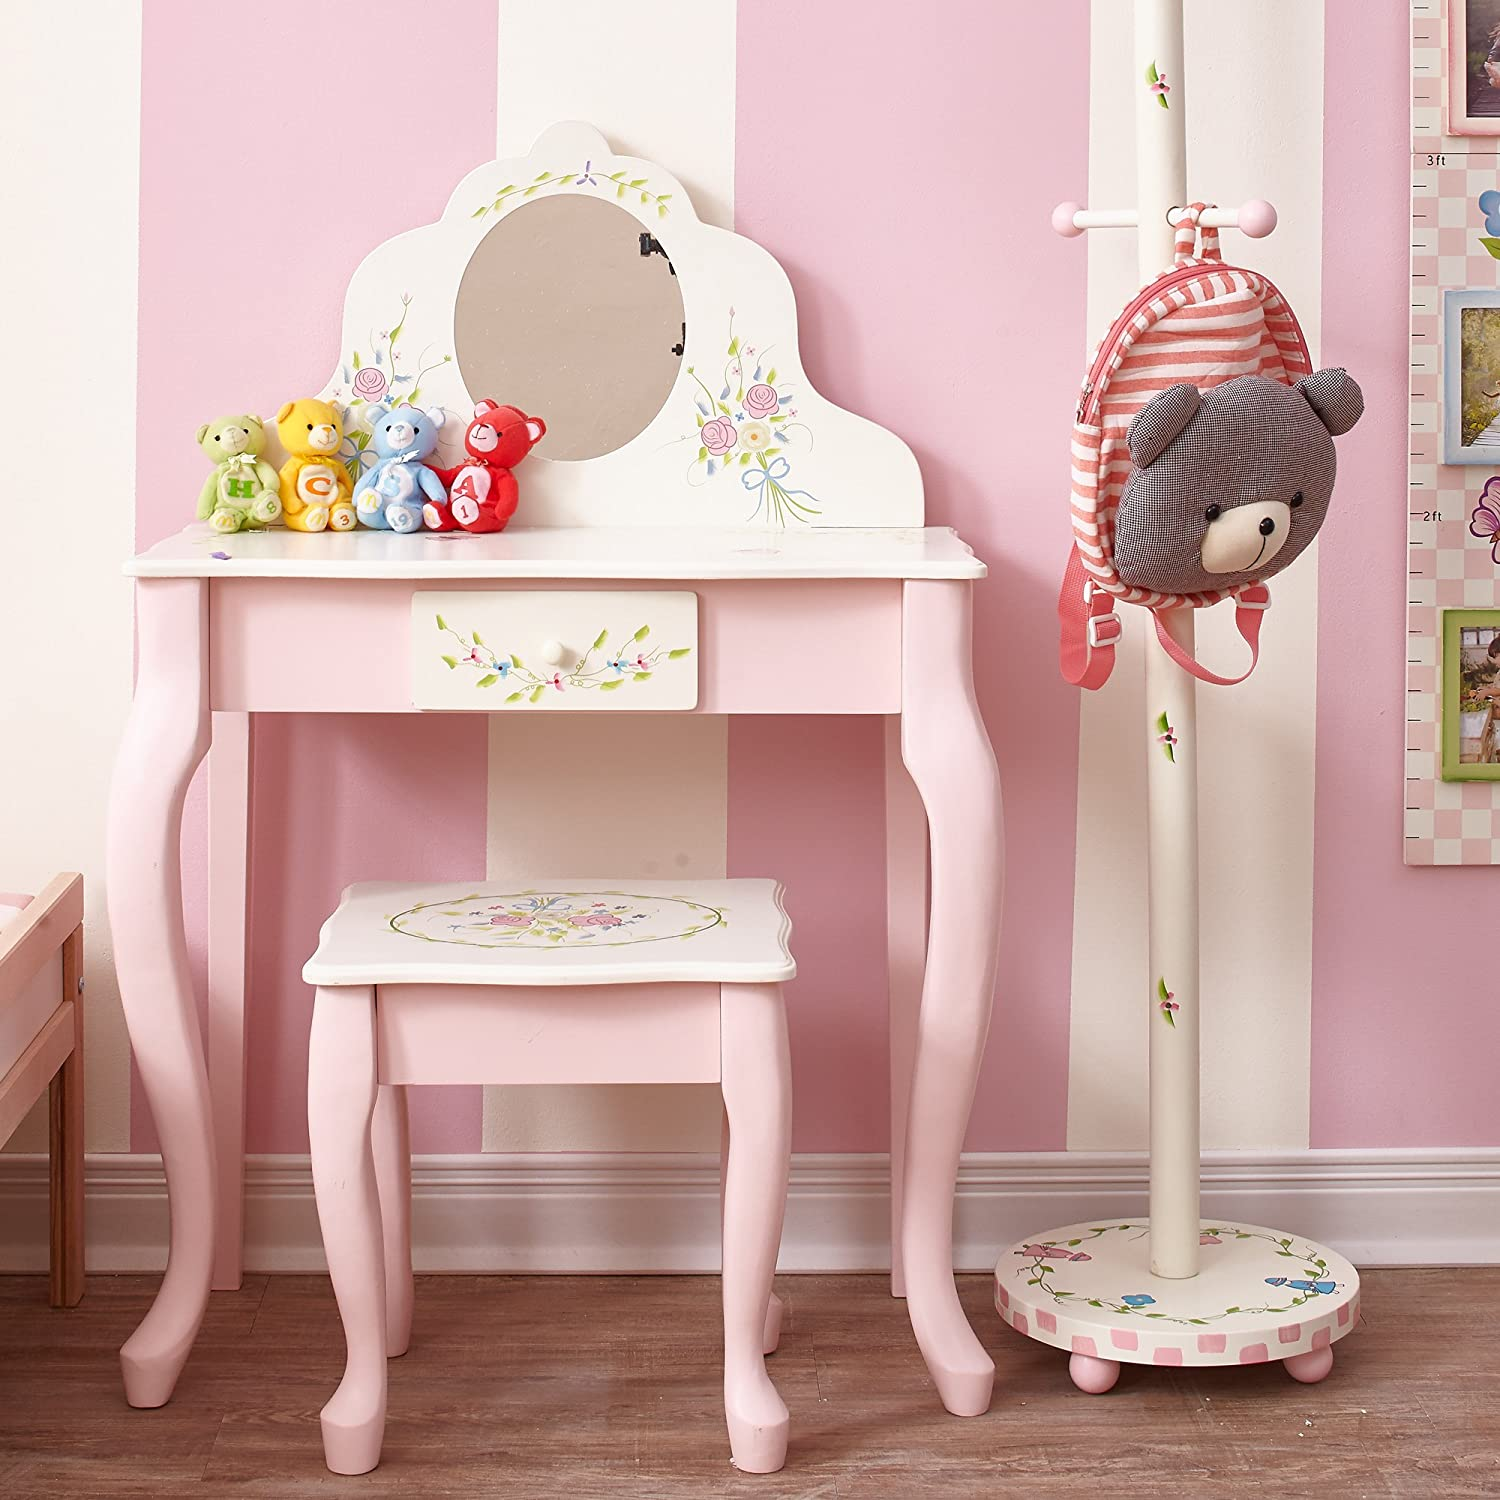 Fantasy Fields - Bouquet Thematic Kids Classic Vanity Table and Stool Set with Mirror | Imagination Inspiring Hand Crafted & Hand Painted Details Non-Toxic, Lead Free Water-based Paint Teamson W-5700AR